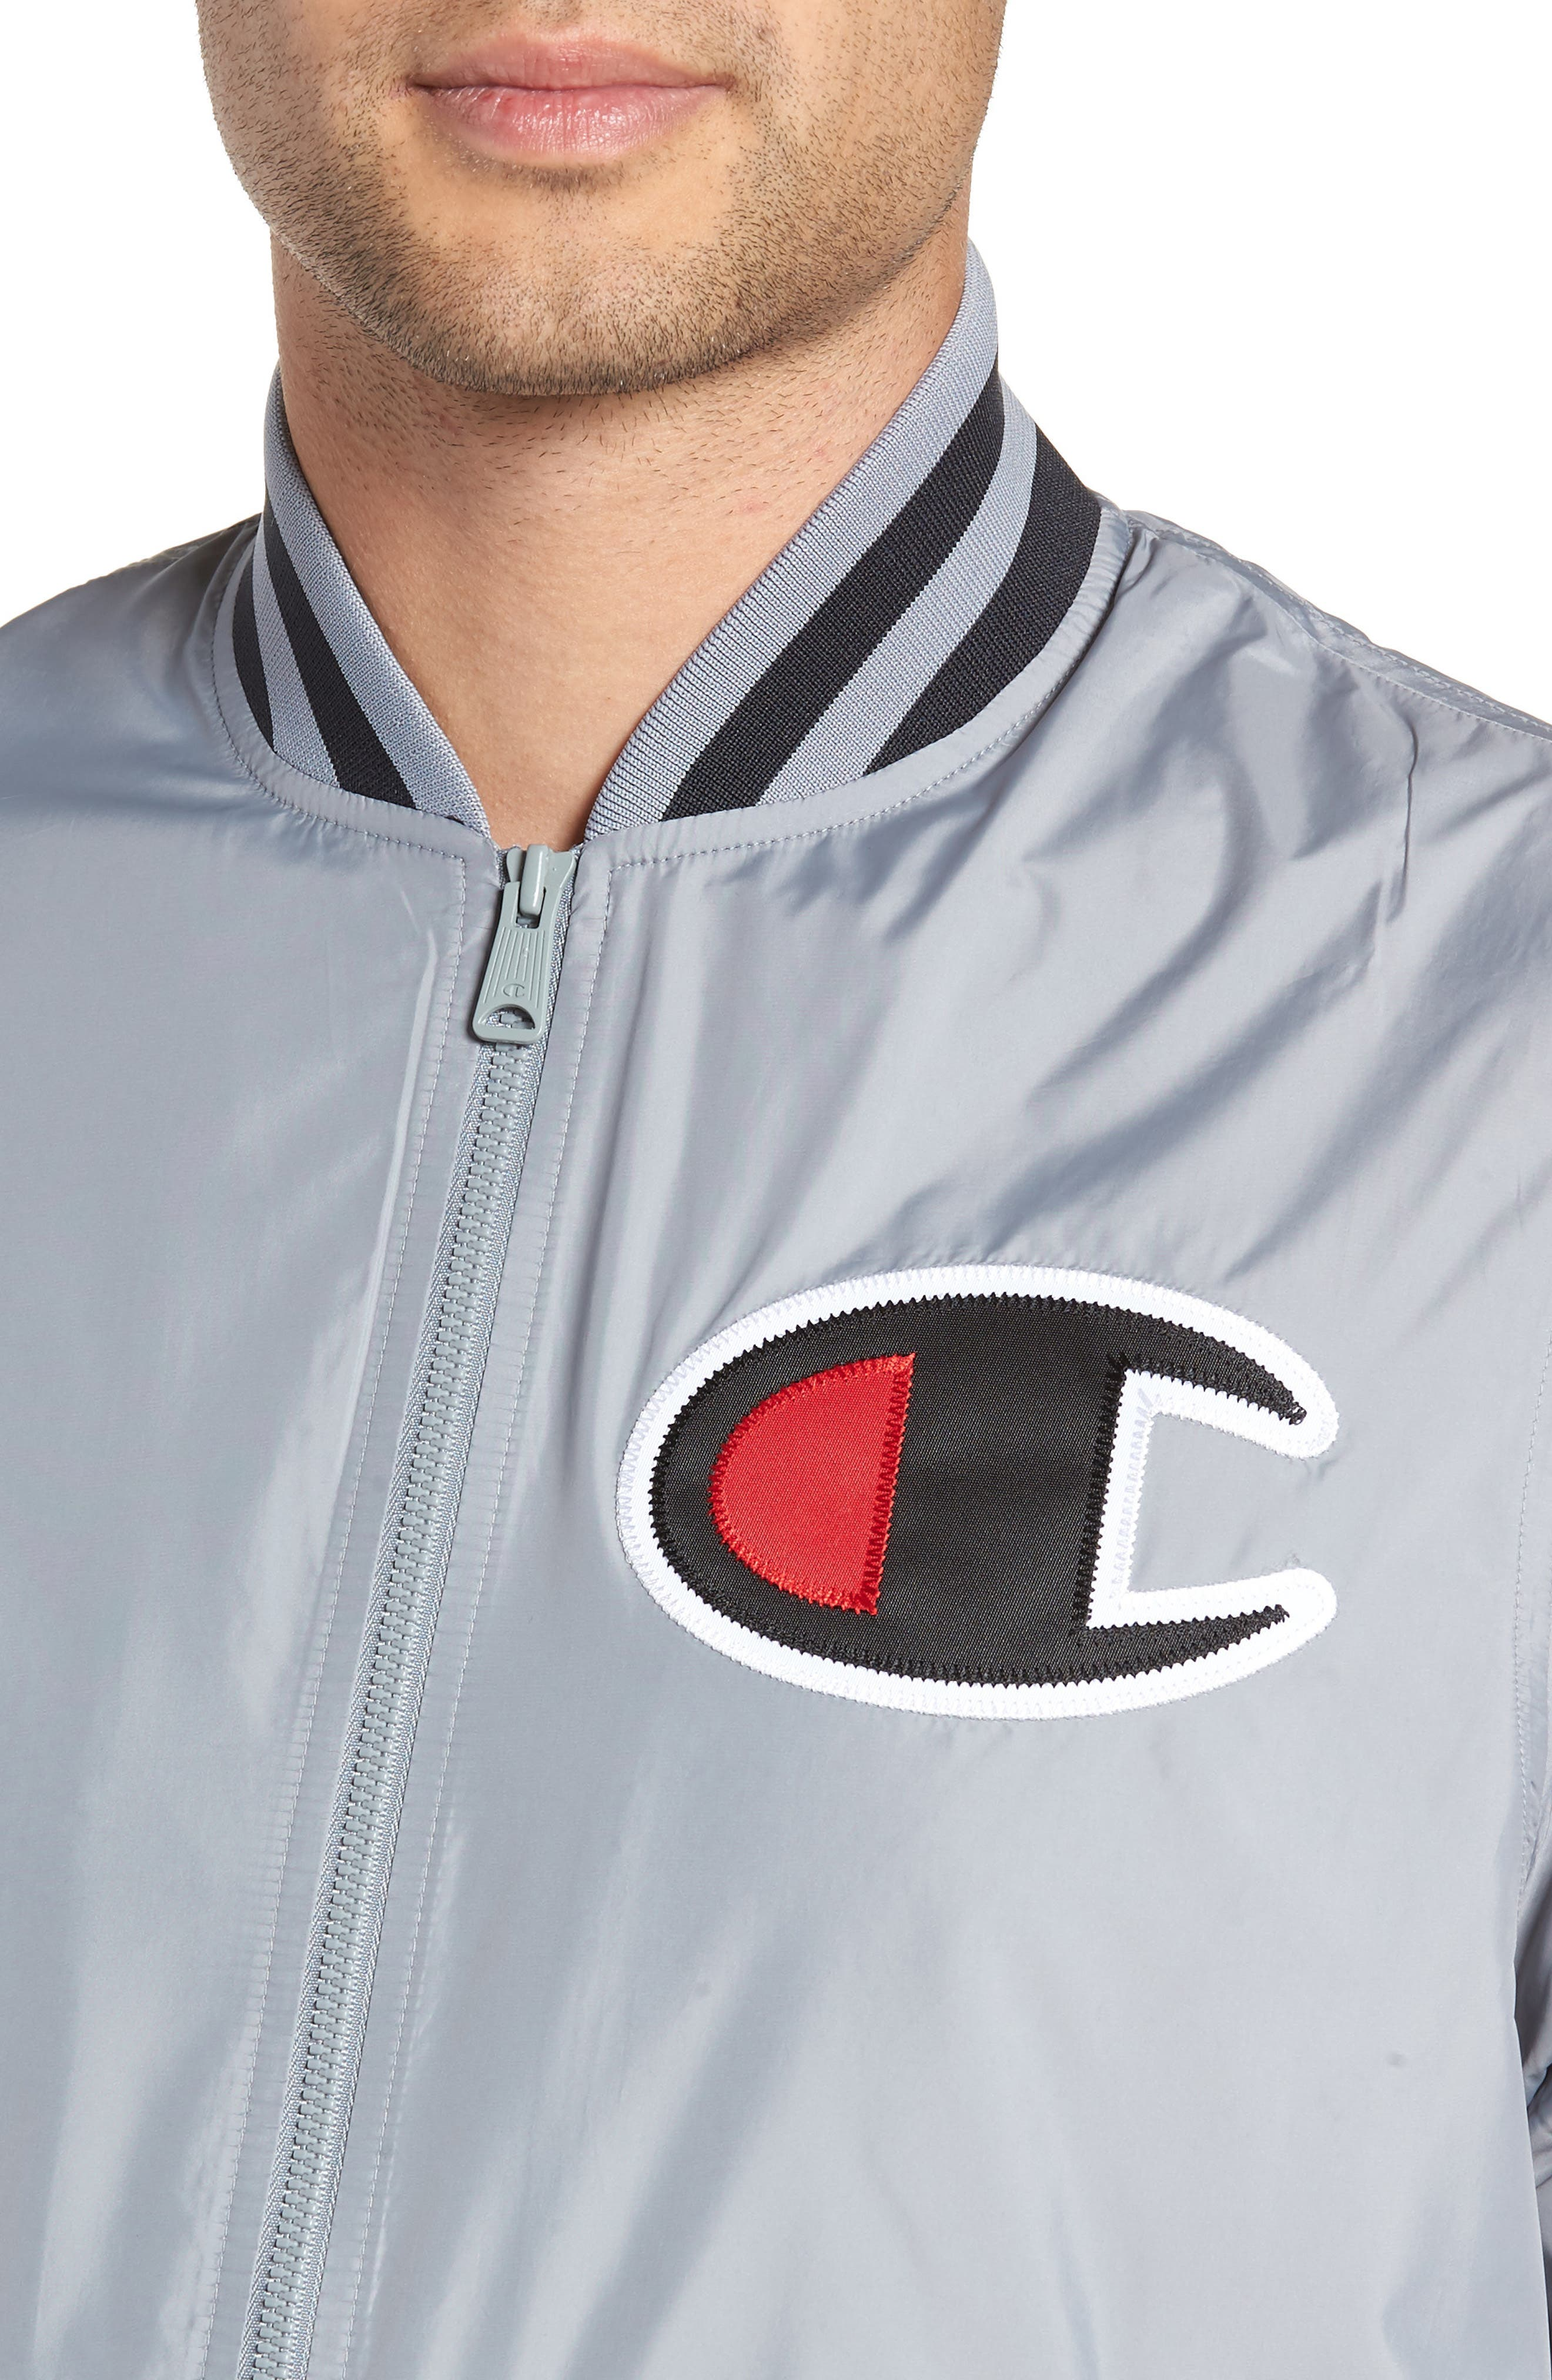 Satin Baseball Jacket,                             Alternate thumbnail 4, color,                             030